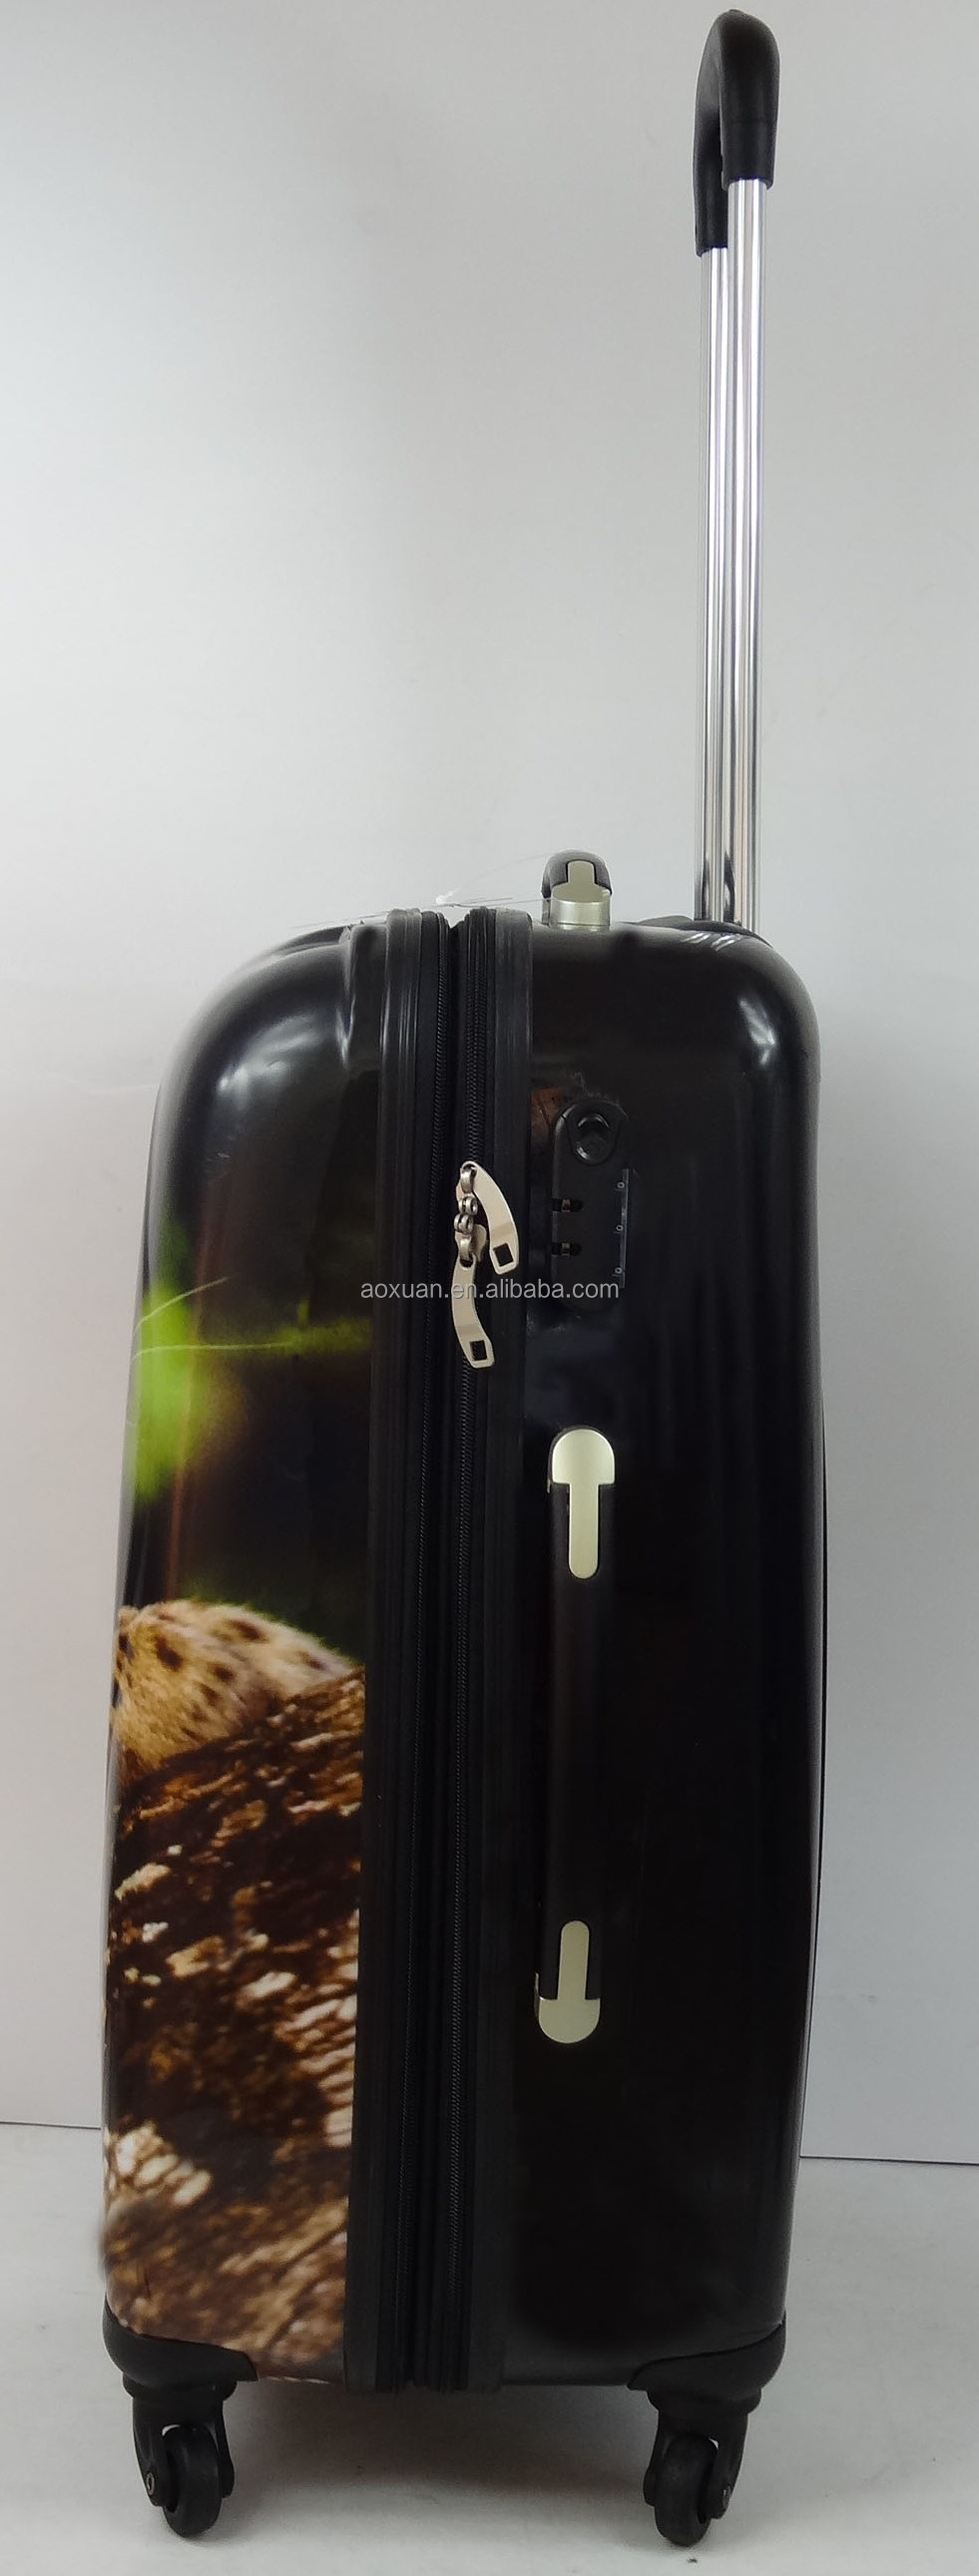 animal print Luggage bag 2015 new design from shanghai luggage factory